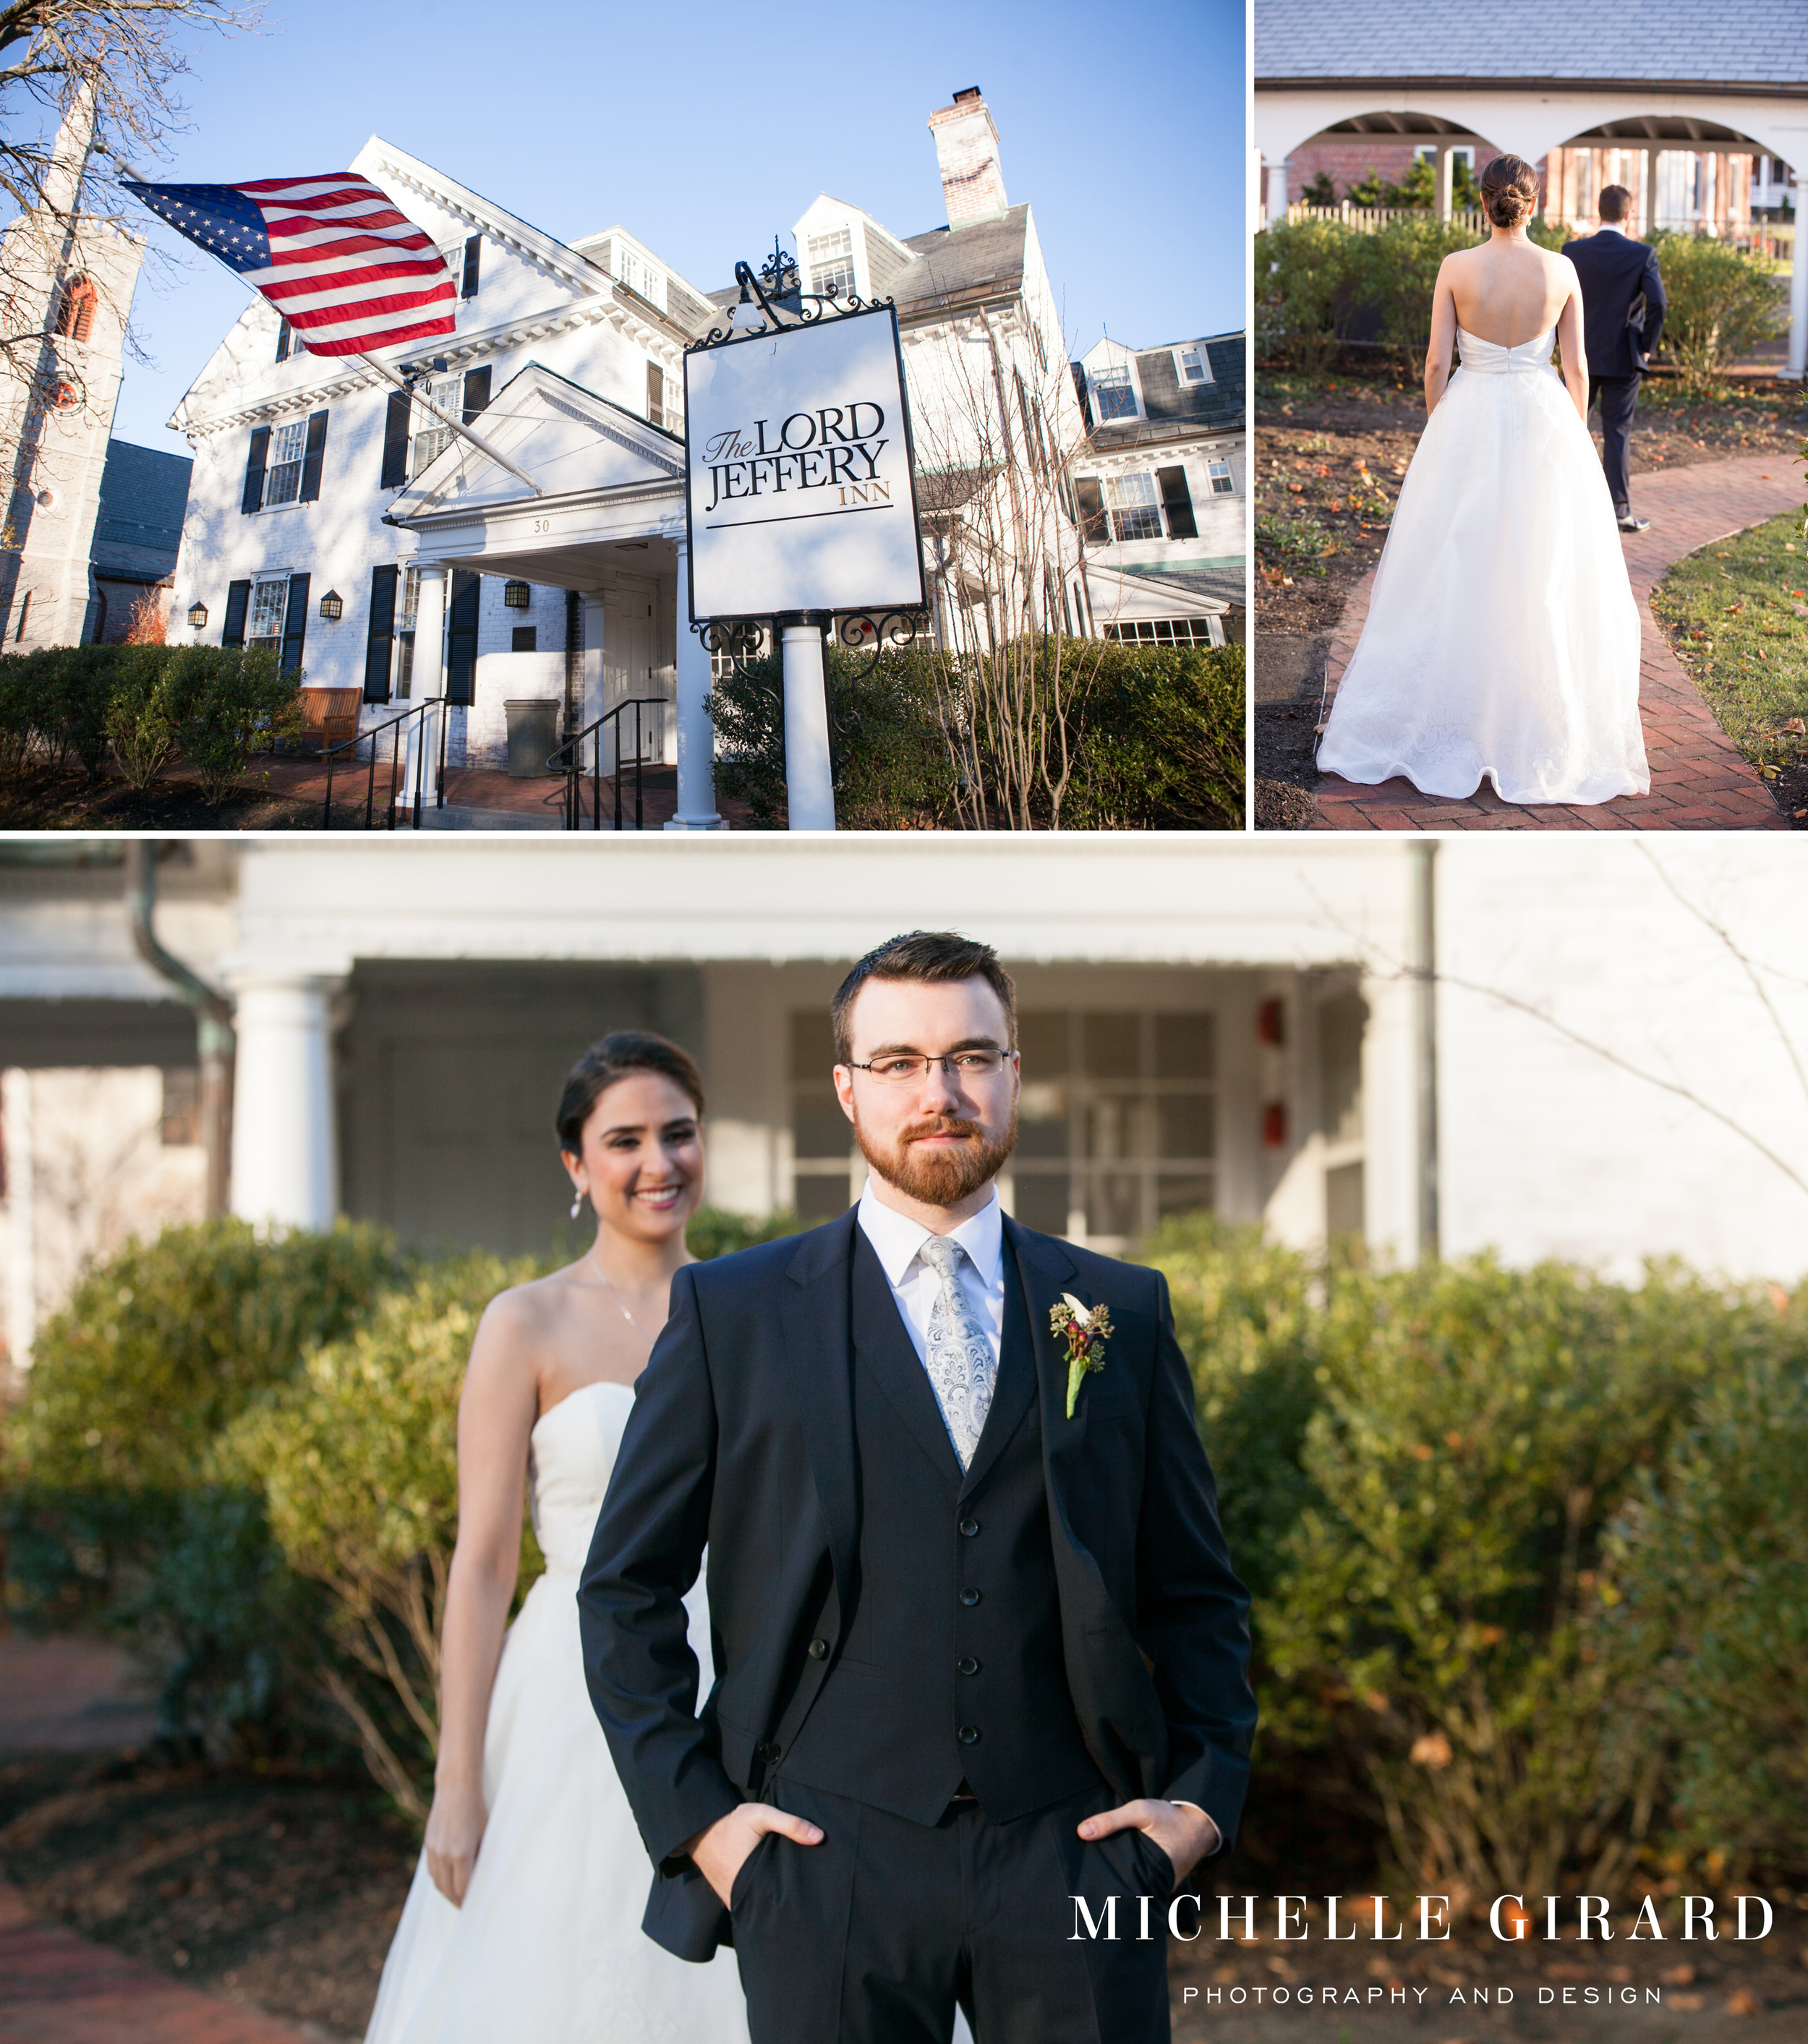 LordJefferyInnWedding_AmherstMa_MichelleGirardPhotography08.jpg